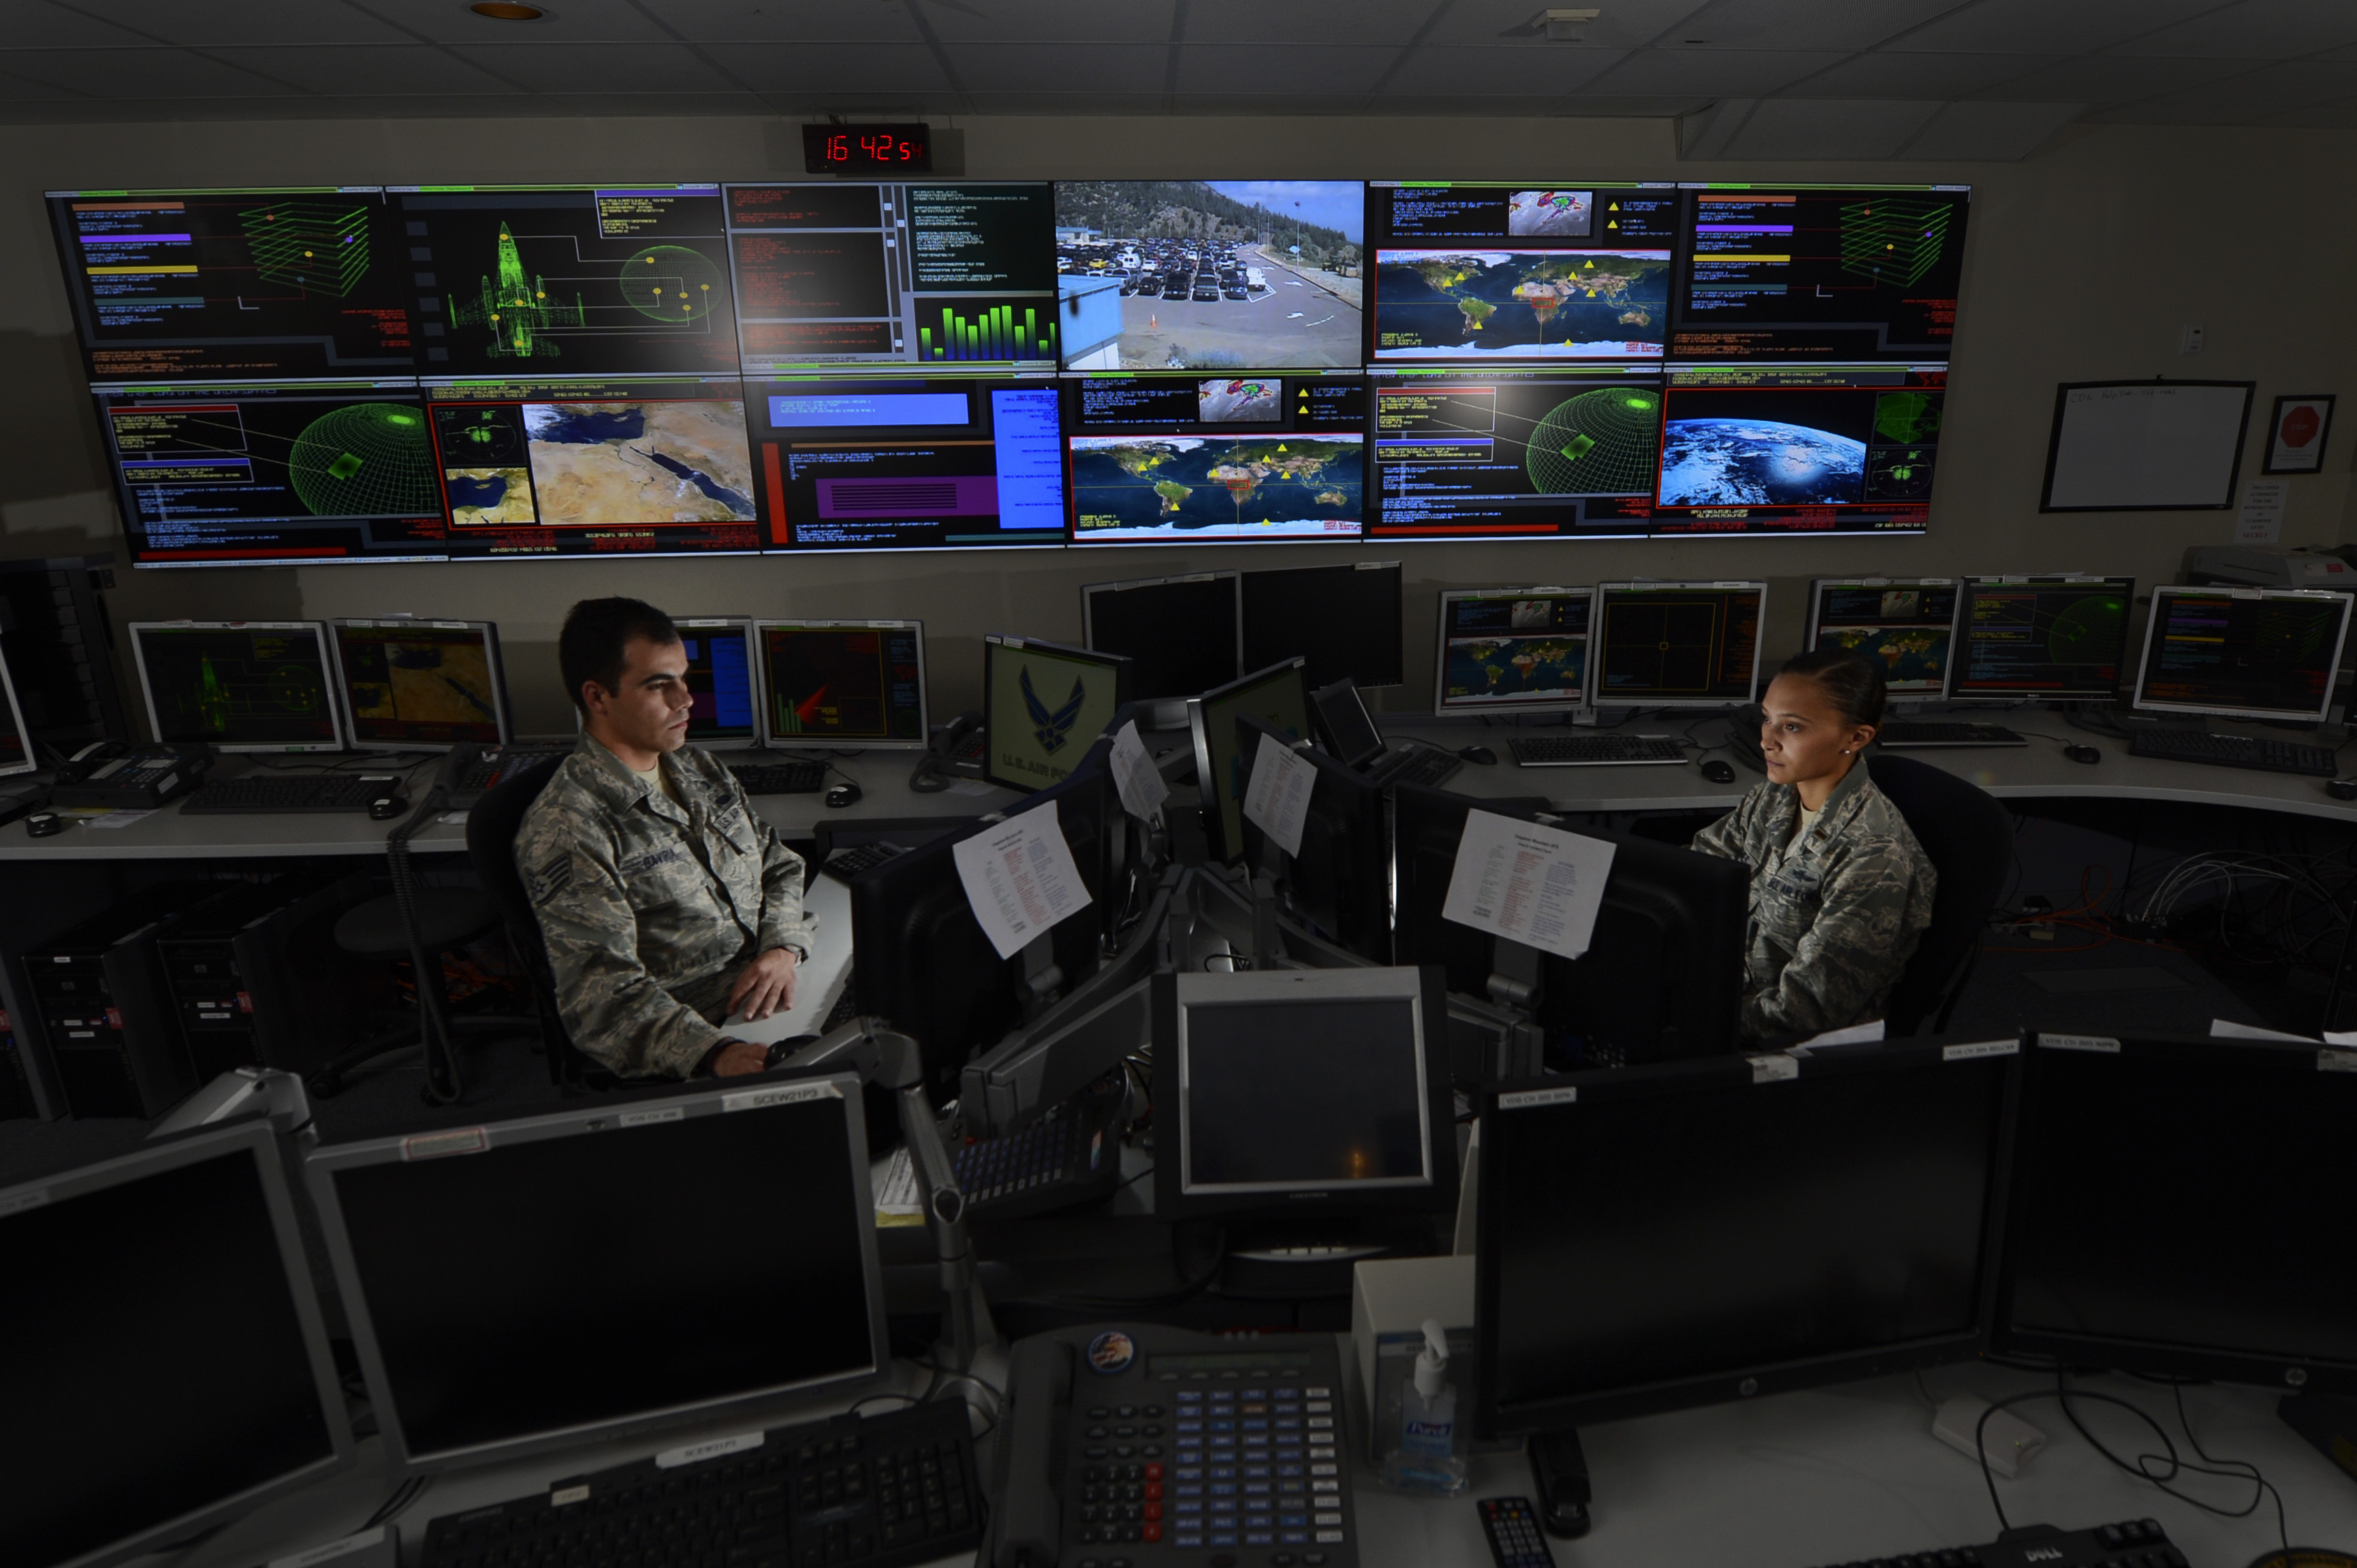 US Air Force Sees Multidomain Command and Control As Critical